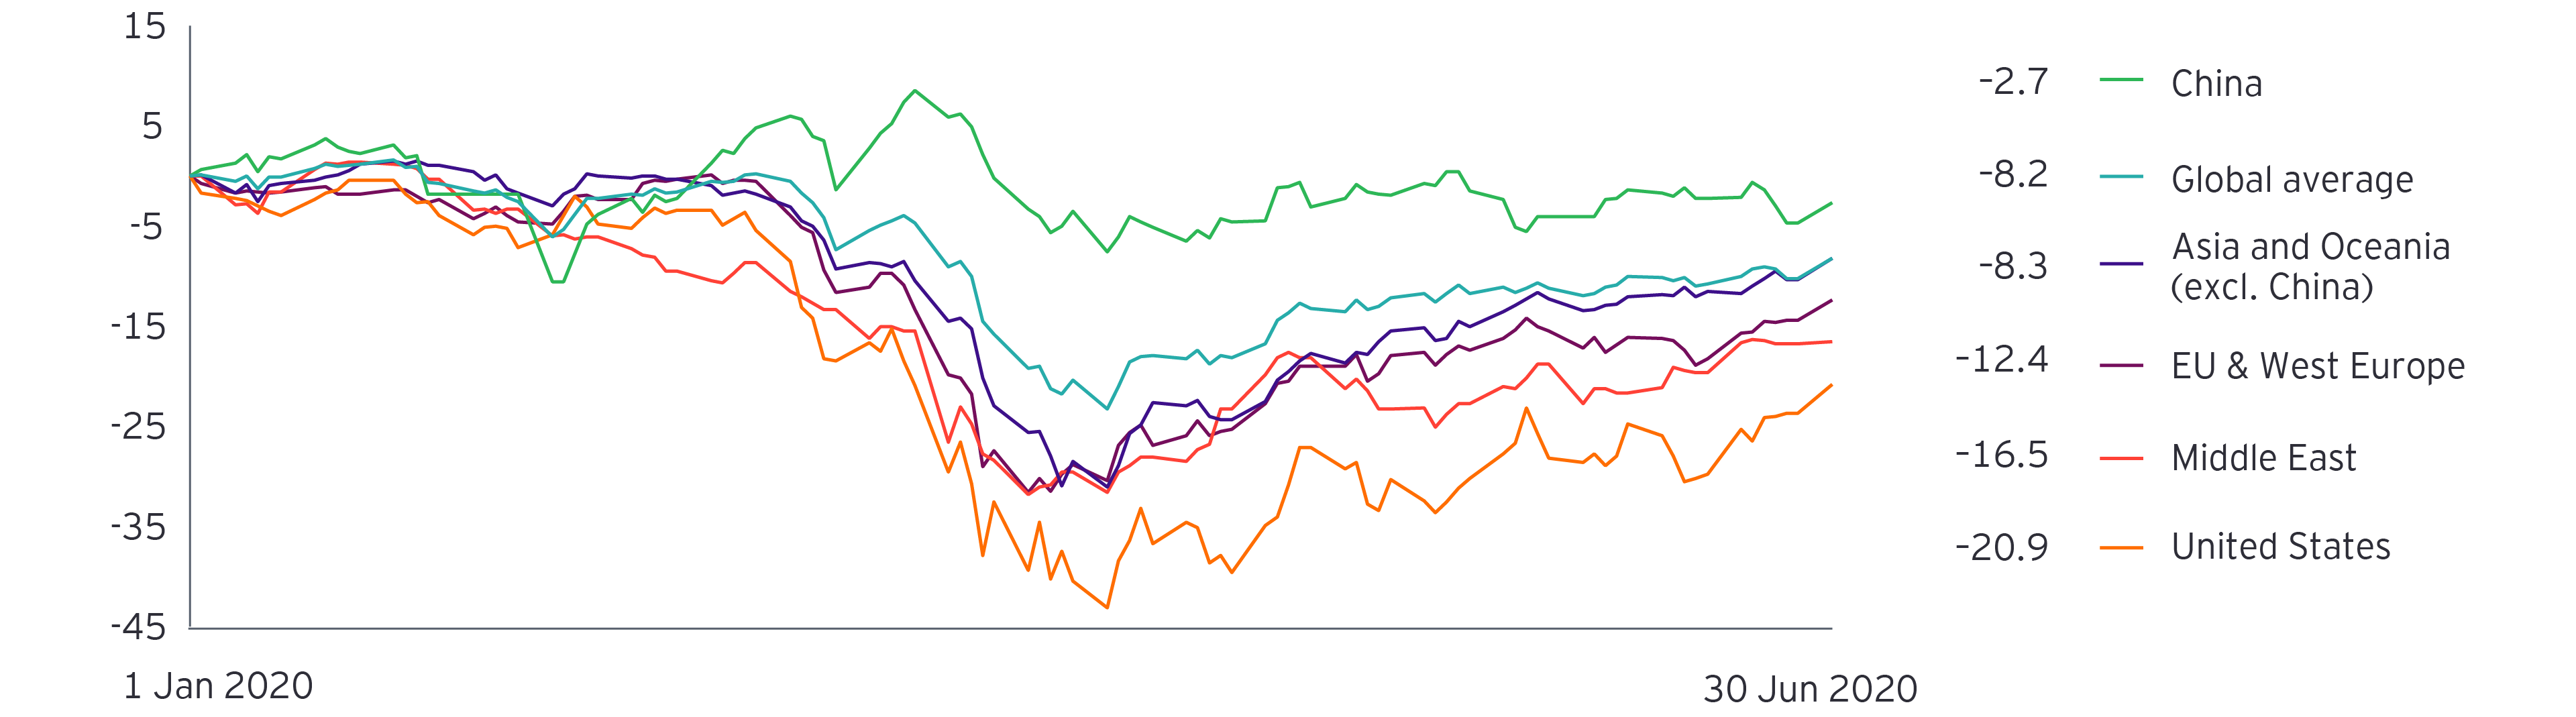 Figure 8: Development of market capitalization as an average of the 700 largest public chemical companies per region, change in percentage compared to 2 January 2020